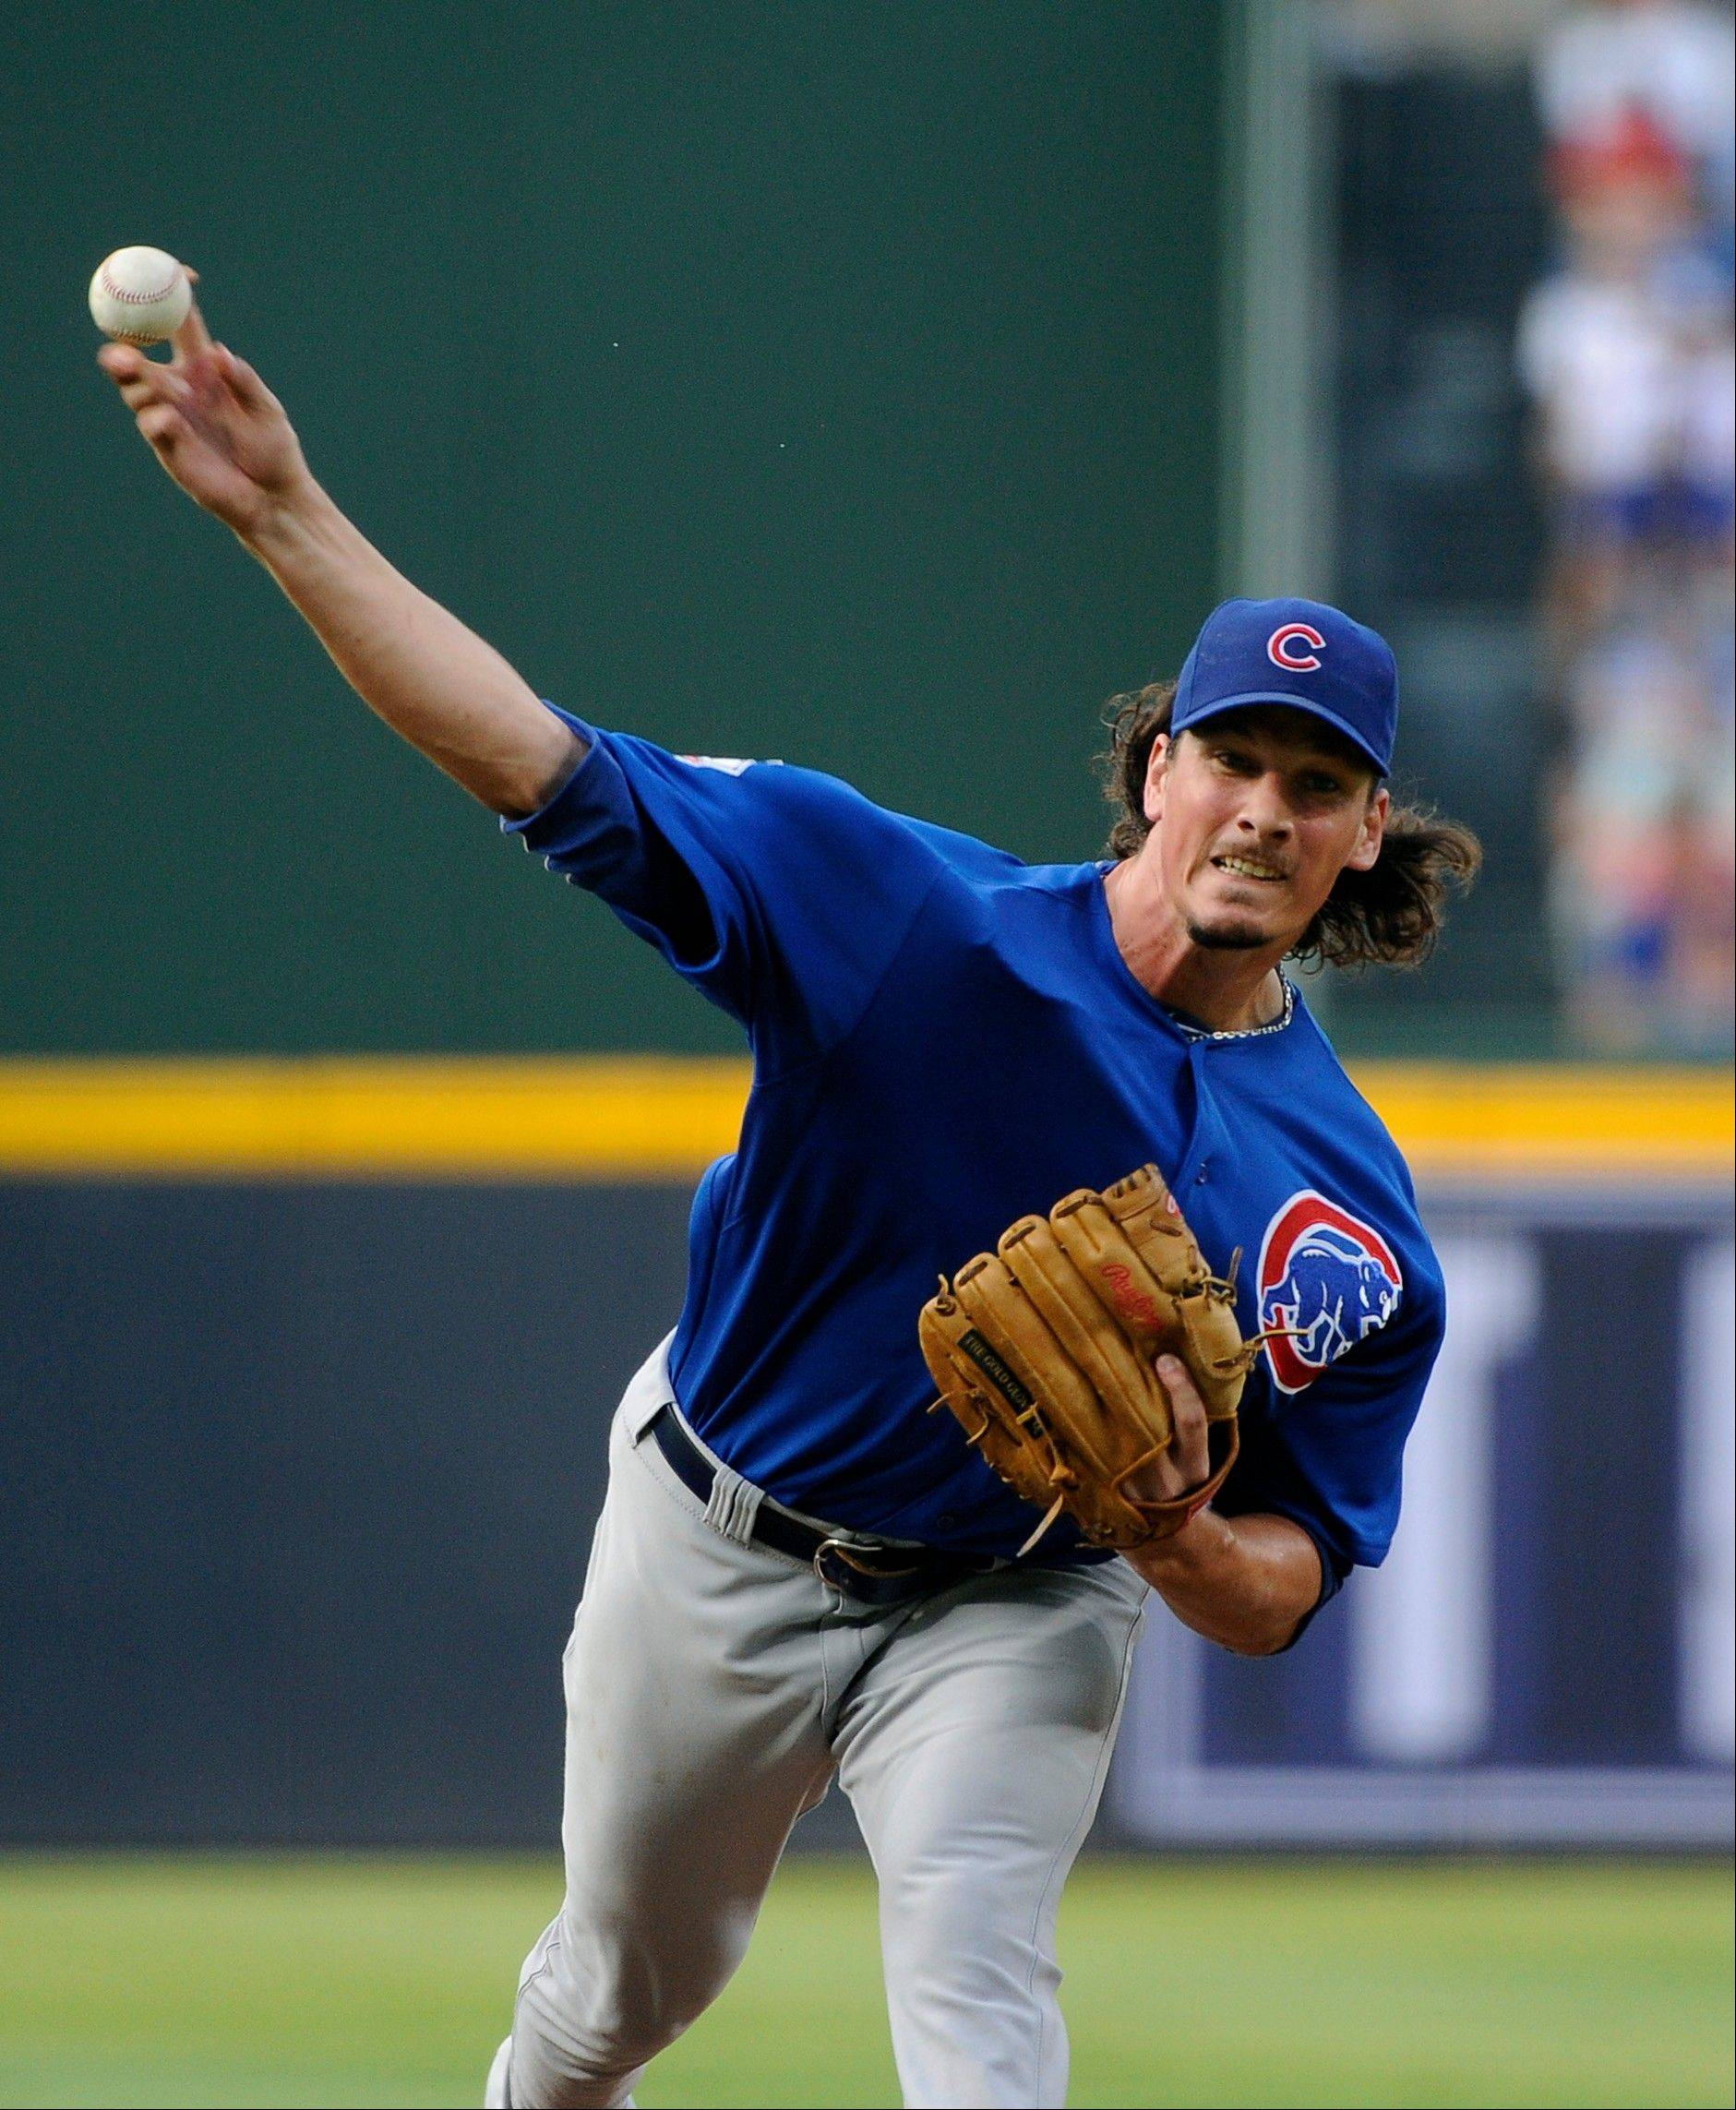 Chicago Cubs pitcher Jeff Samardzija (29) throws to the Atlanta Braves in the first inning of their baseball game on Monday at Turner Field in Atlanta.